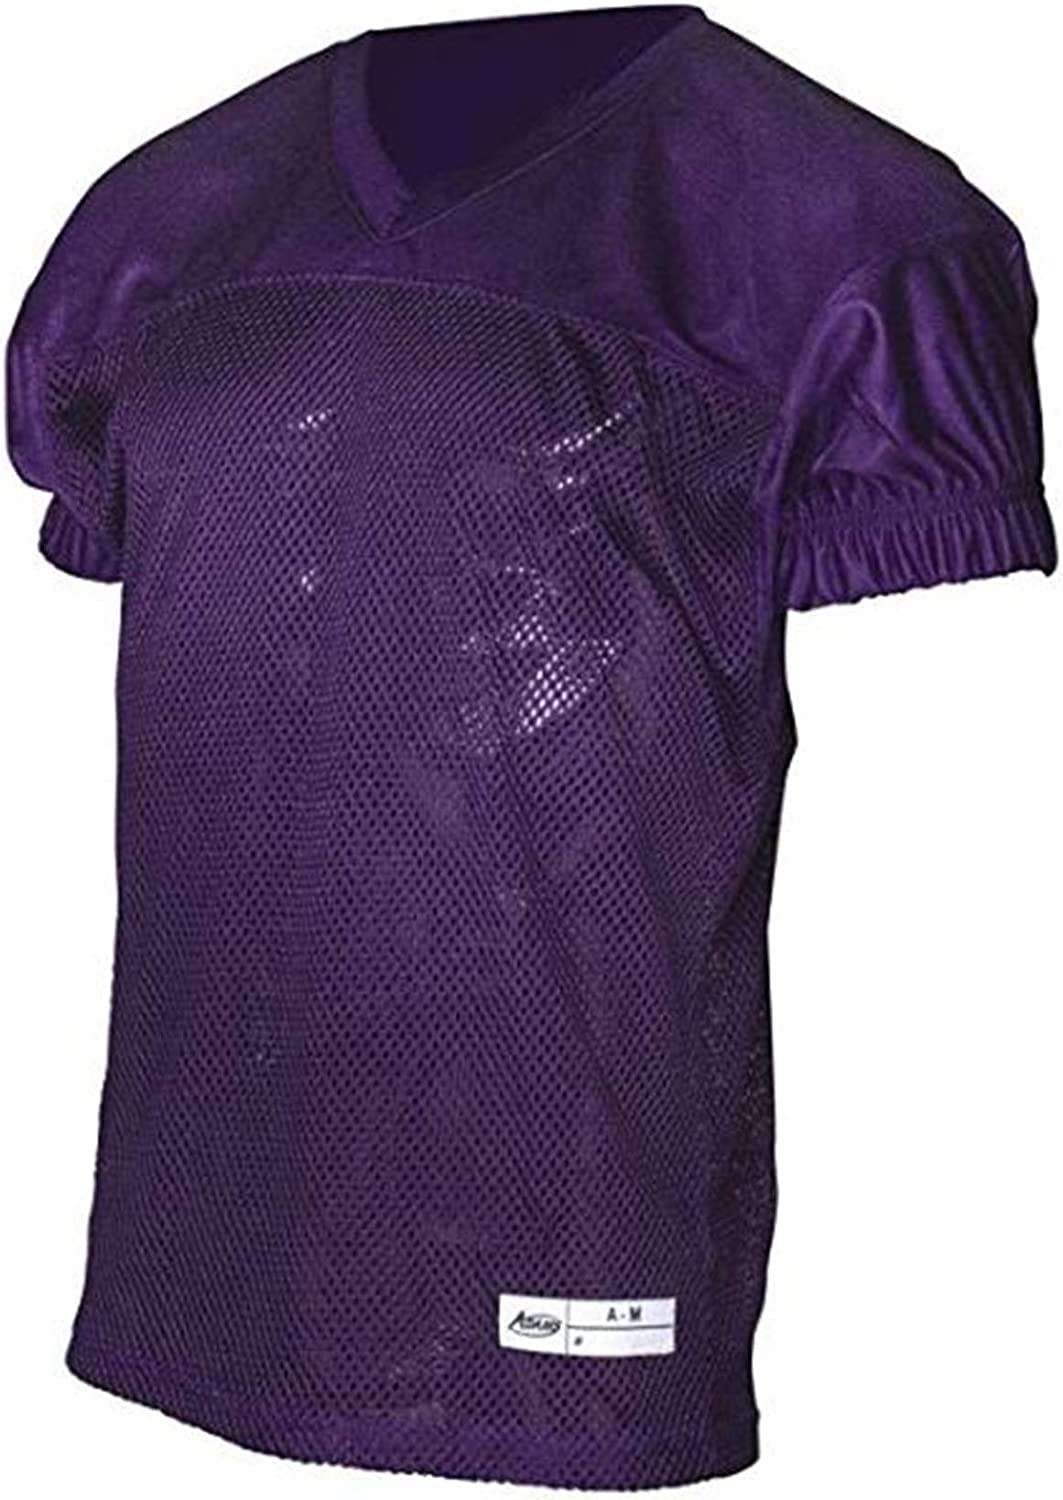 ADAMS USA Dazzle Varsity Practice Football Jersey Purple 2X-Large